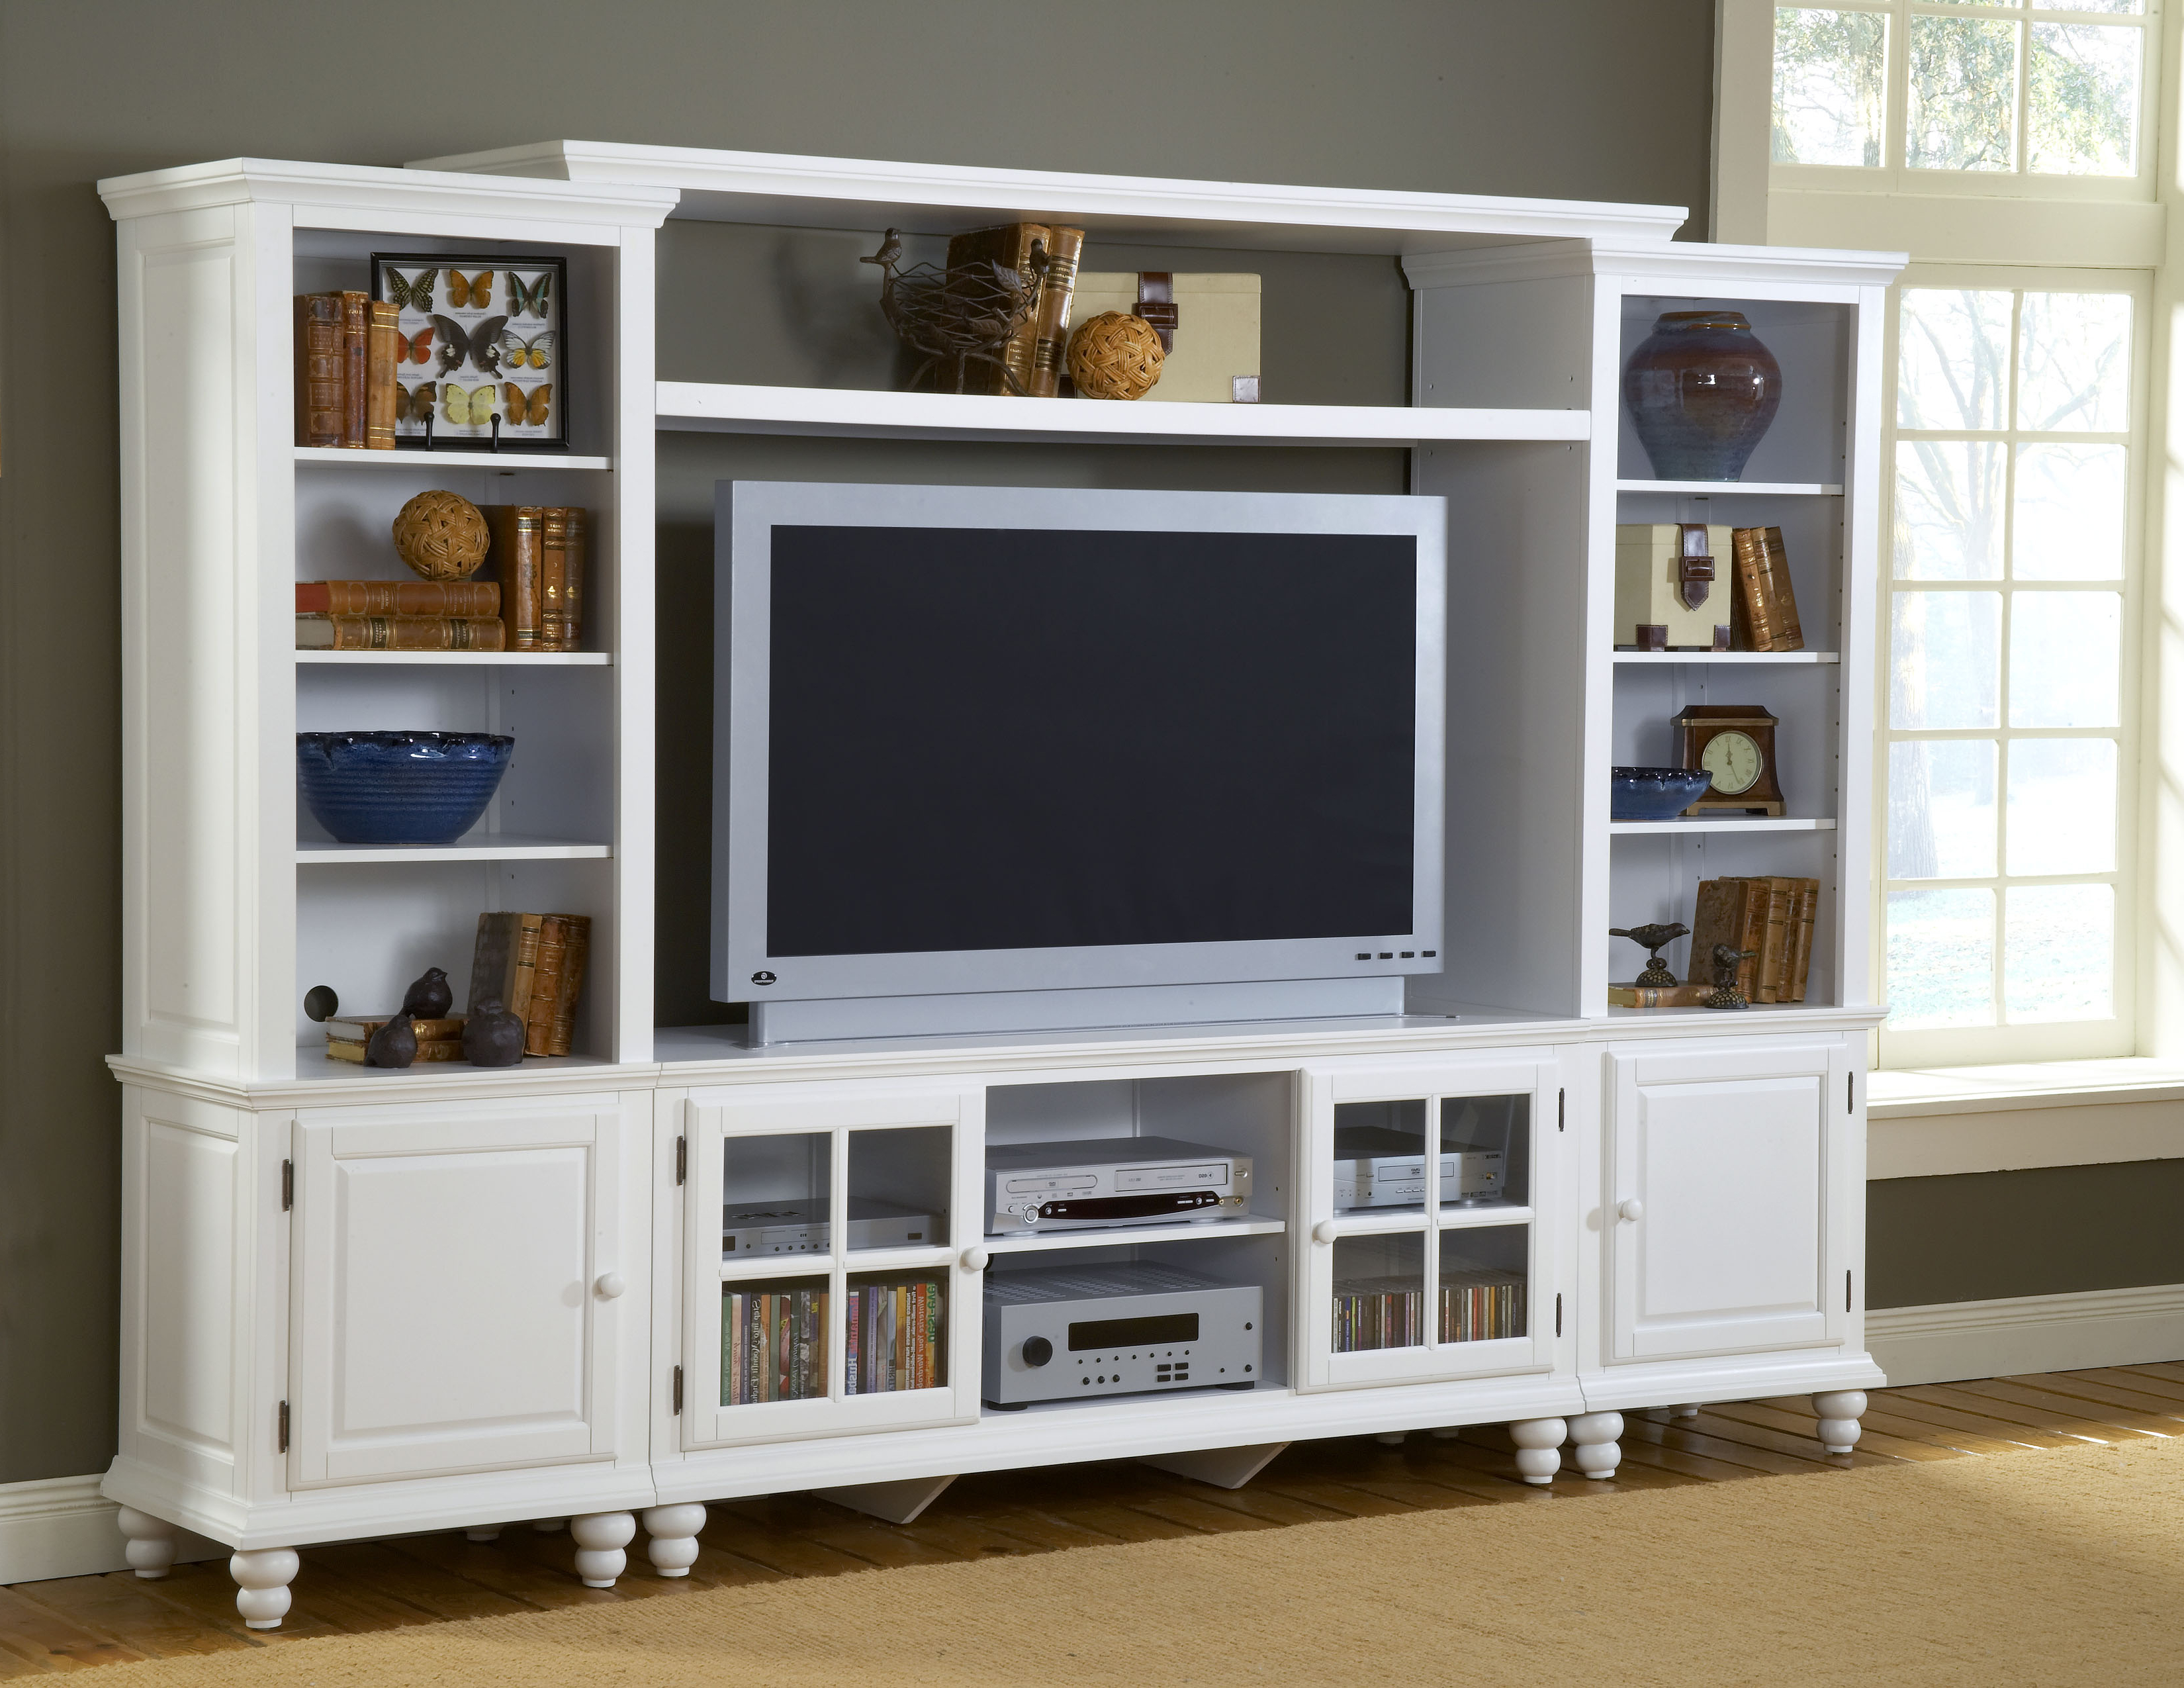 Best And Newest Large Tv Cabinets – Image Cabinets And Shower Mandra Tavern With Regard To Large Tv Cabinets (Gallery 5 of 20)